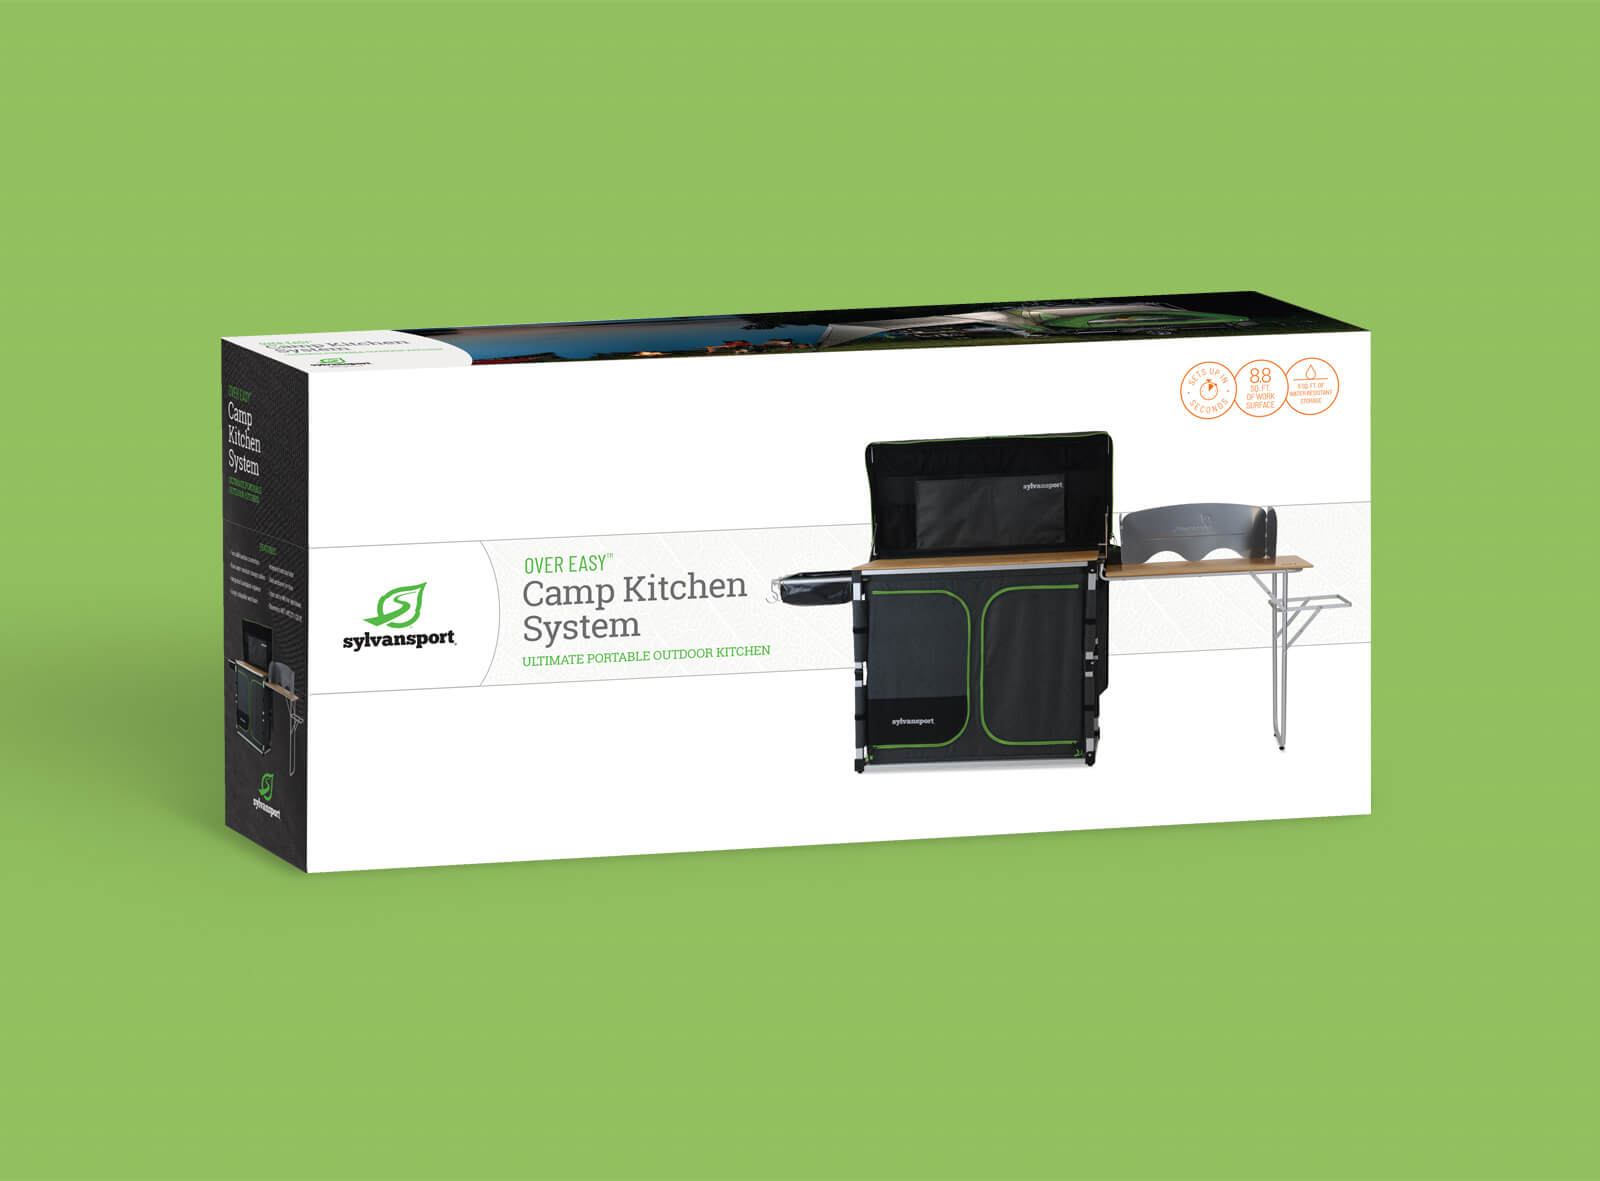 The front of Sylvan Sport packaging box for Camp Kitchen System against green background. Shows image of the product against a white background.